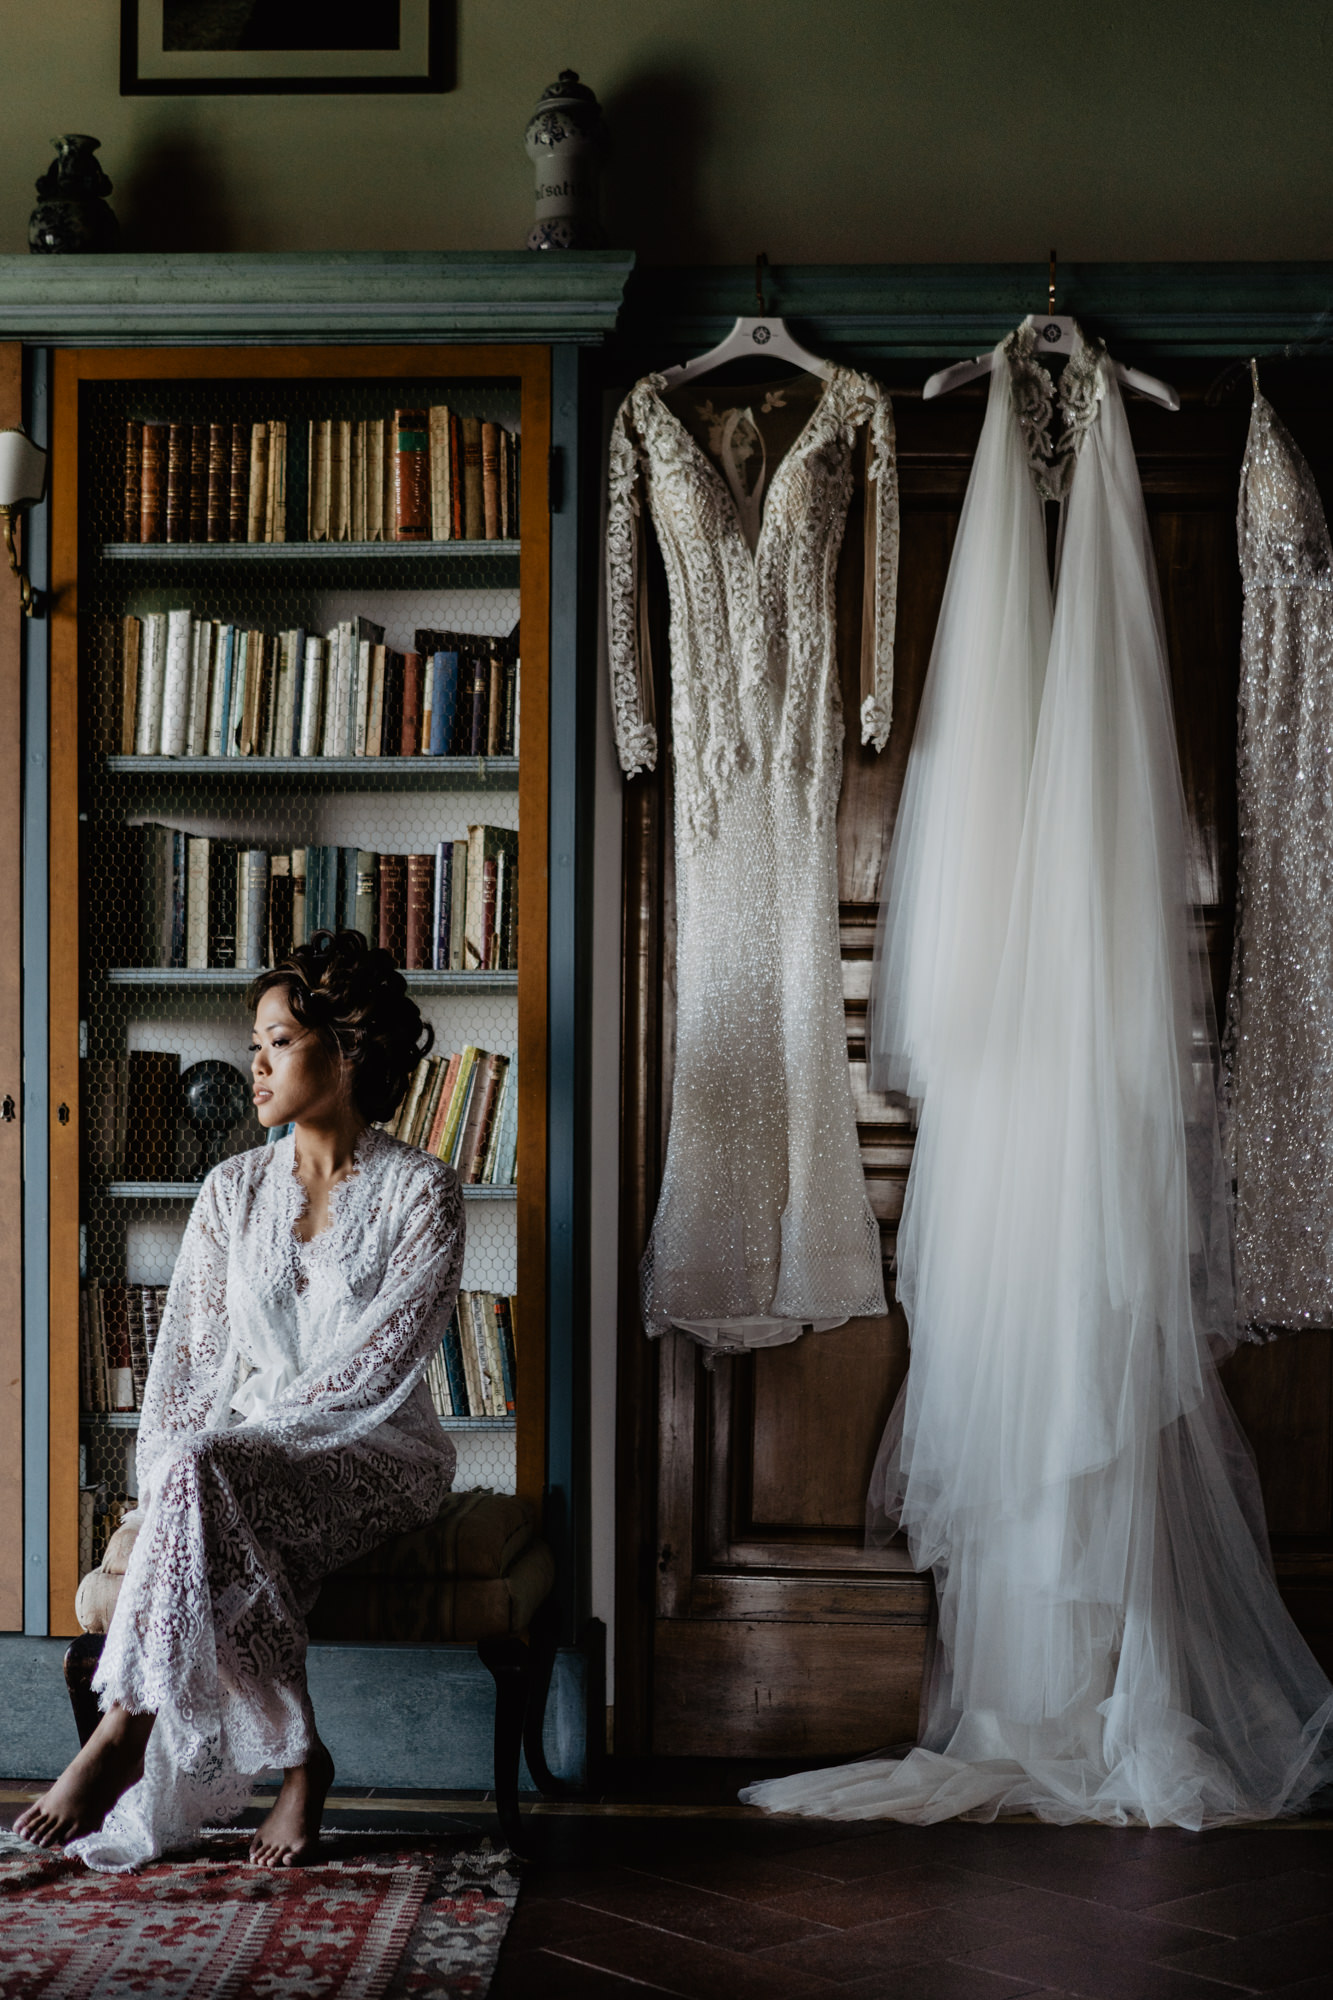 Bride beside couture wedding gowns photo by David Bastianoni